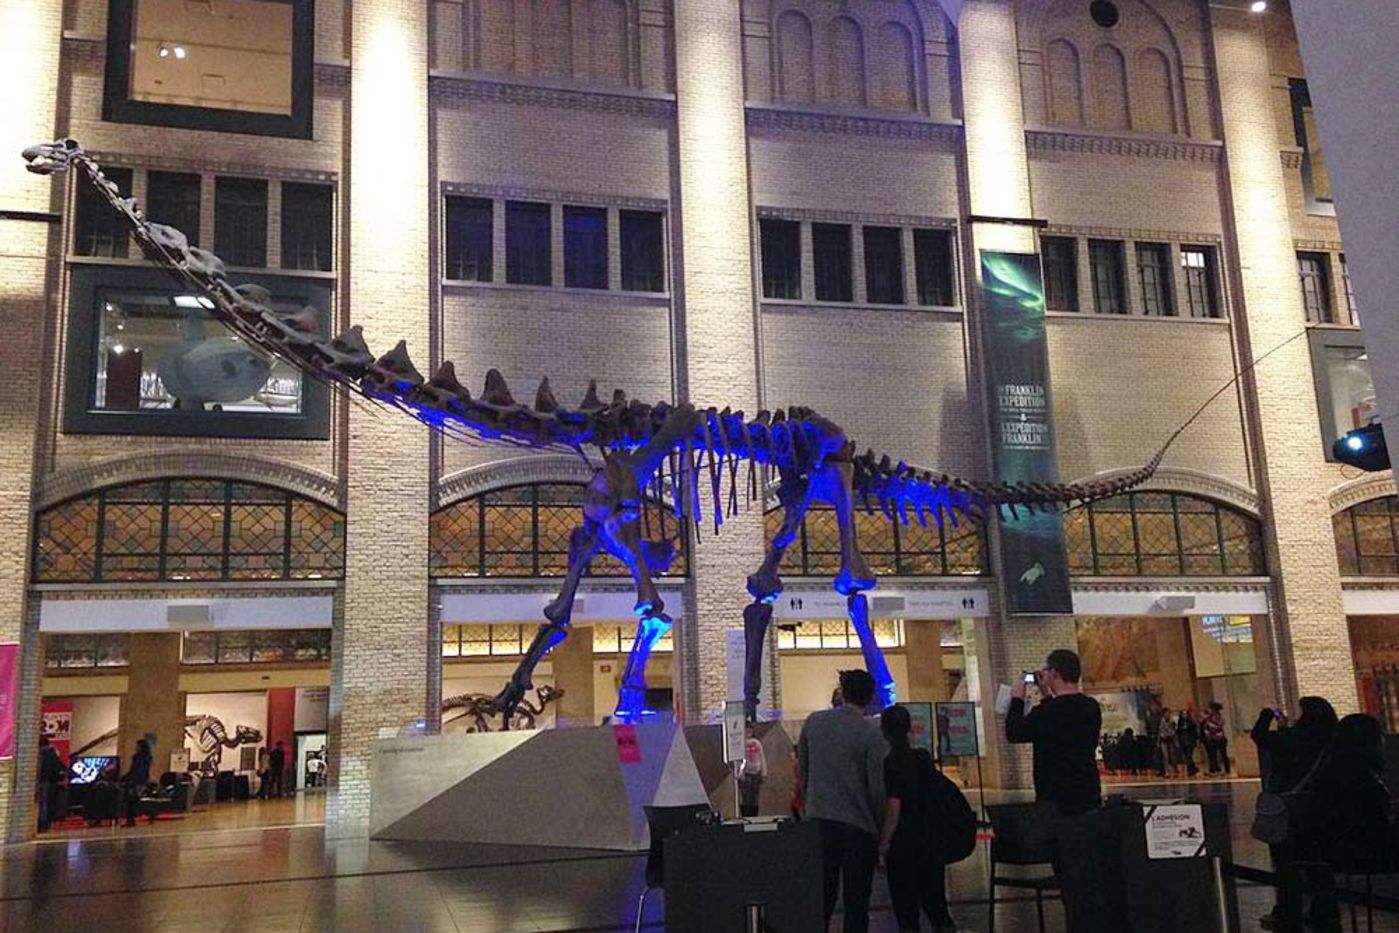 A dinosaur skeleton with long neck and tail in the middle of a large hall. It's dimly lit and there's a blue light on the dinosaur. People are looking at it and taking photos.